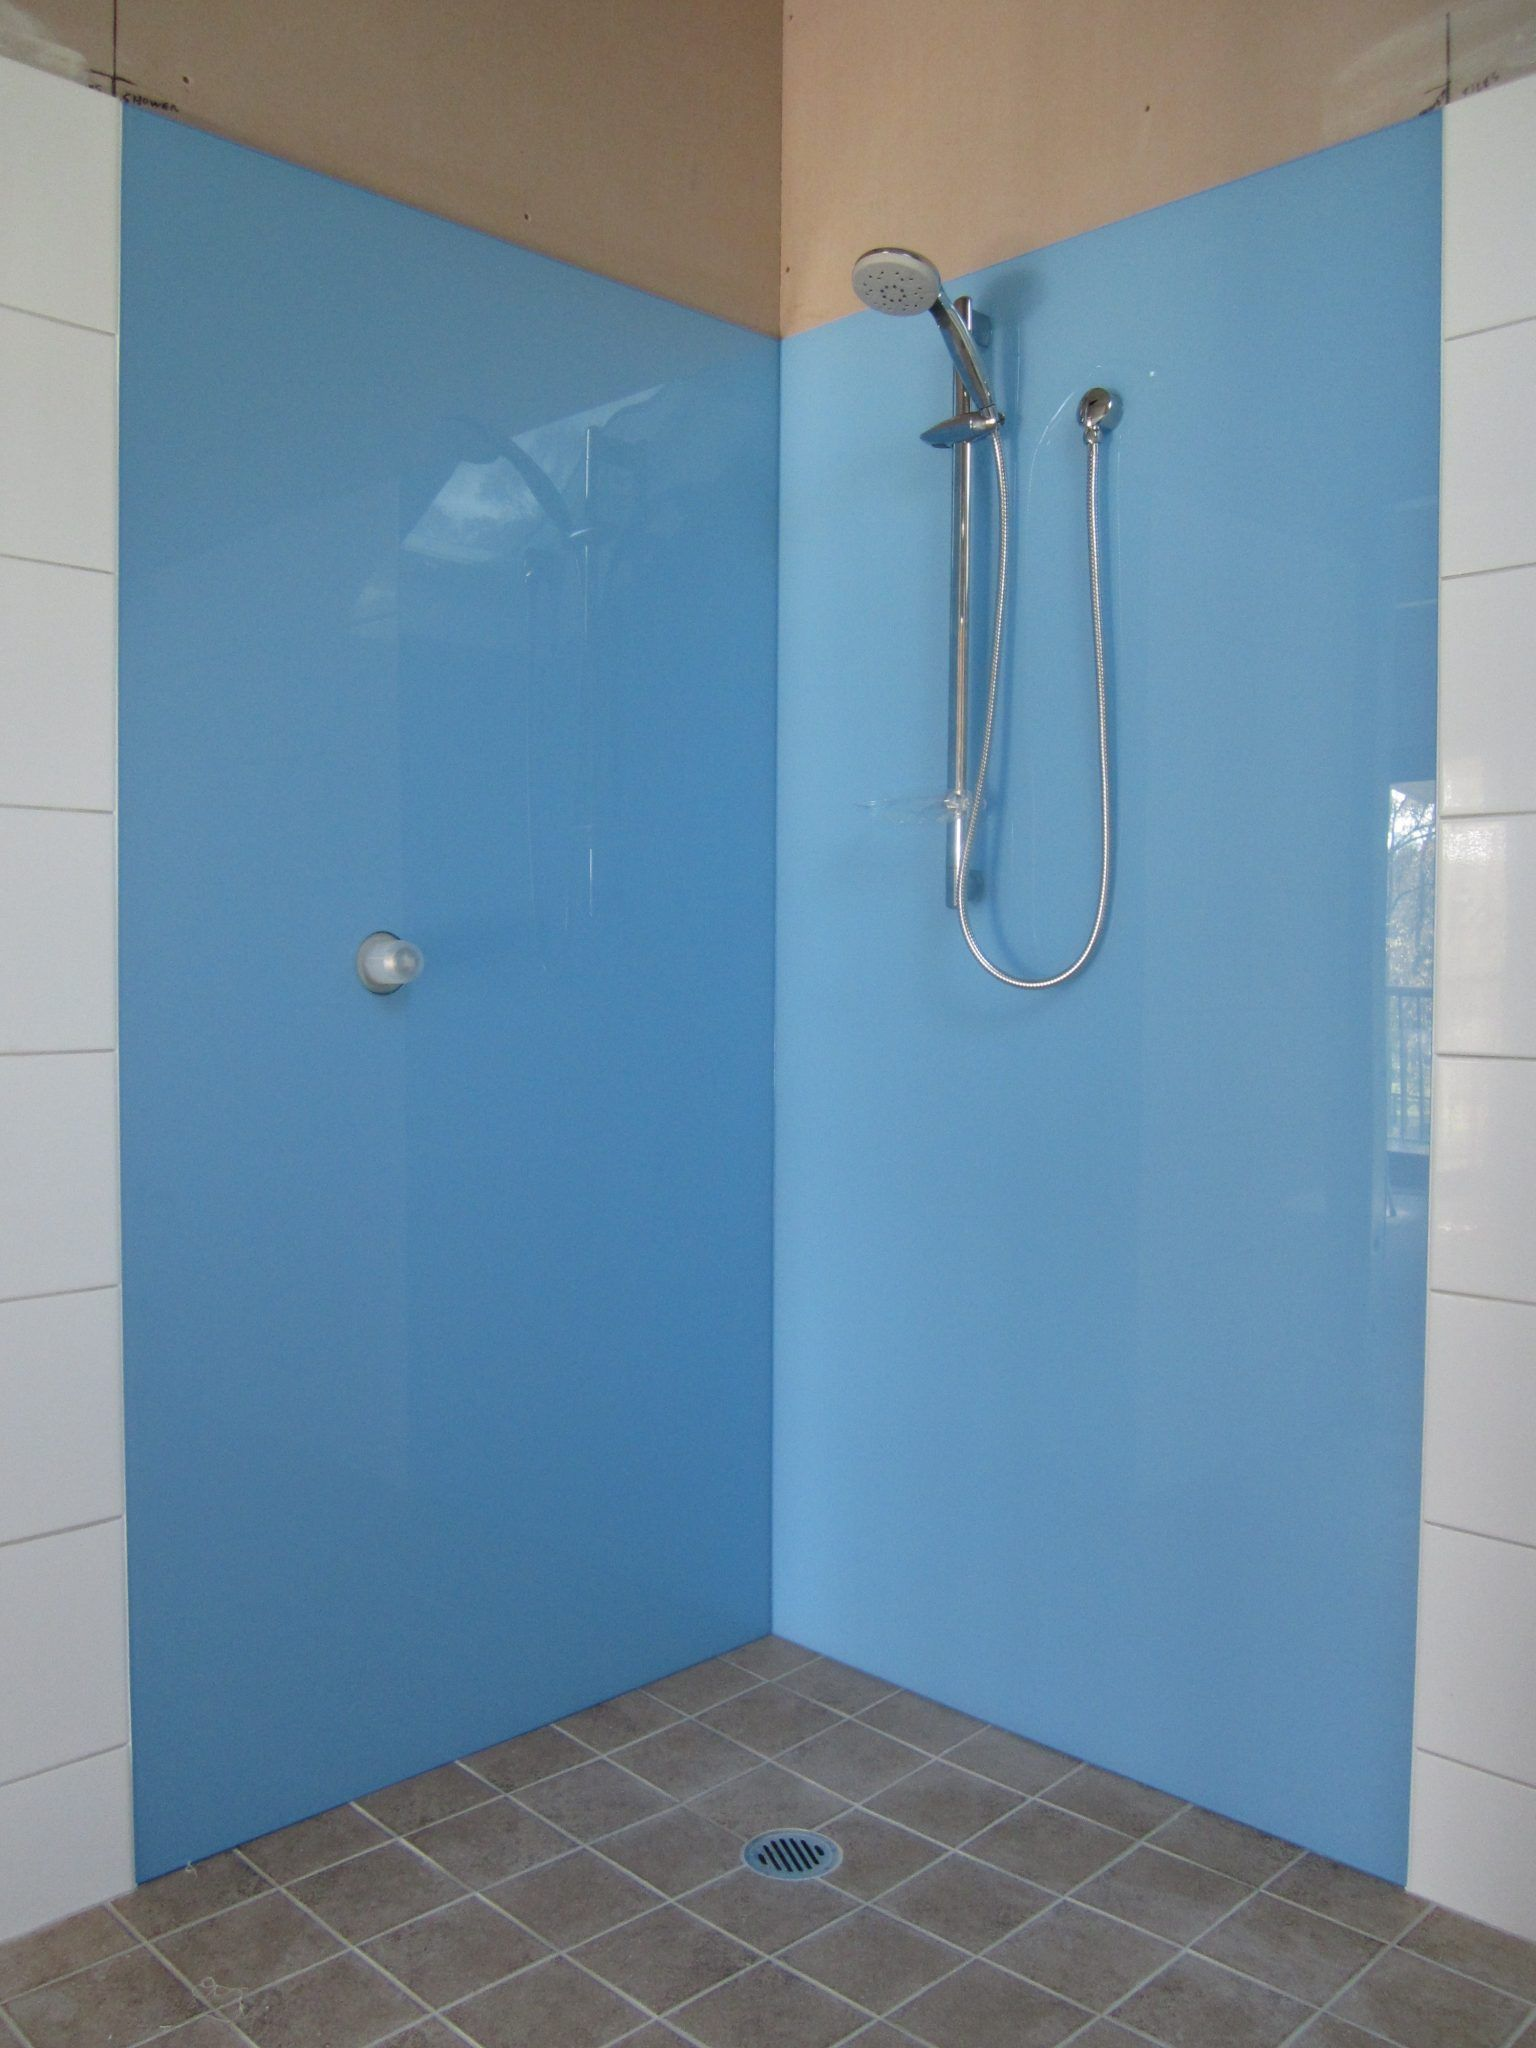 Old Fashioned Acrylic Showers Pictures - Bathtub Ideas - dilata.info